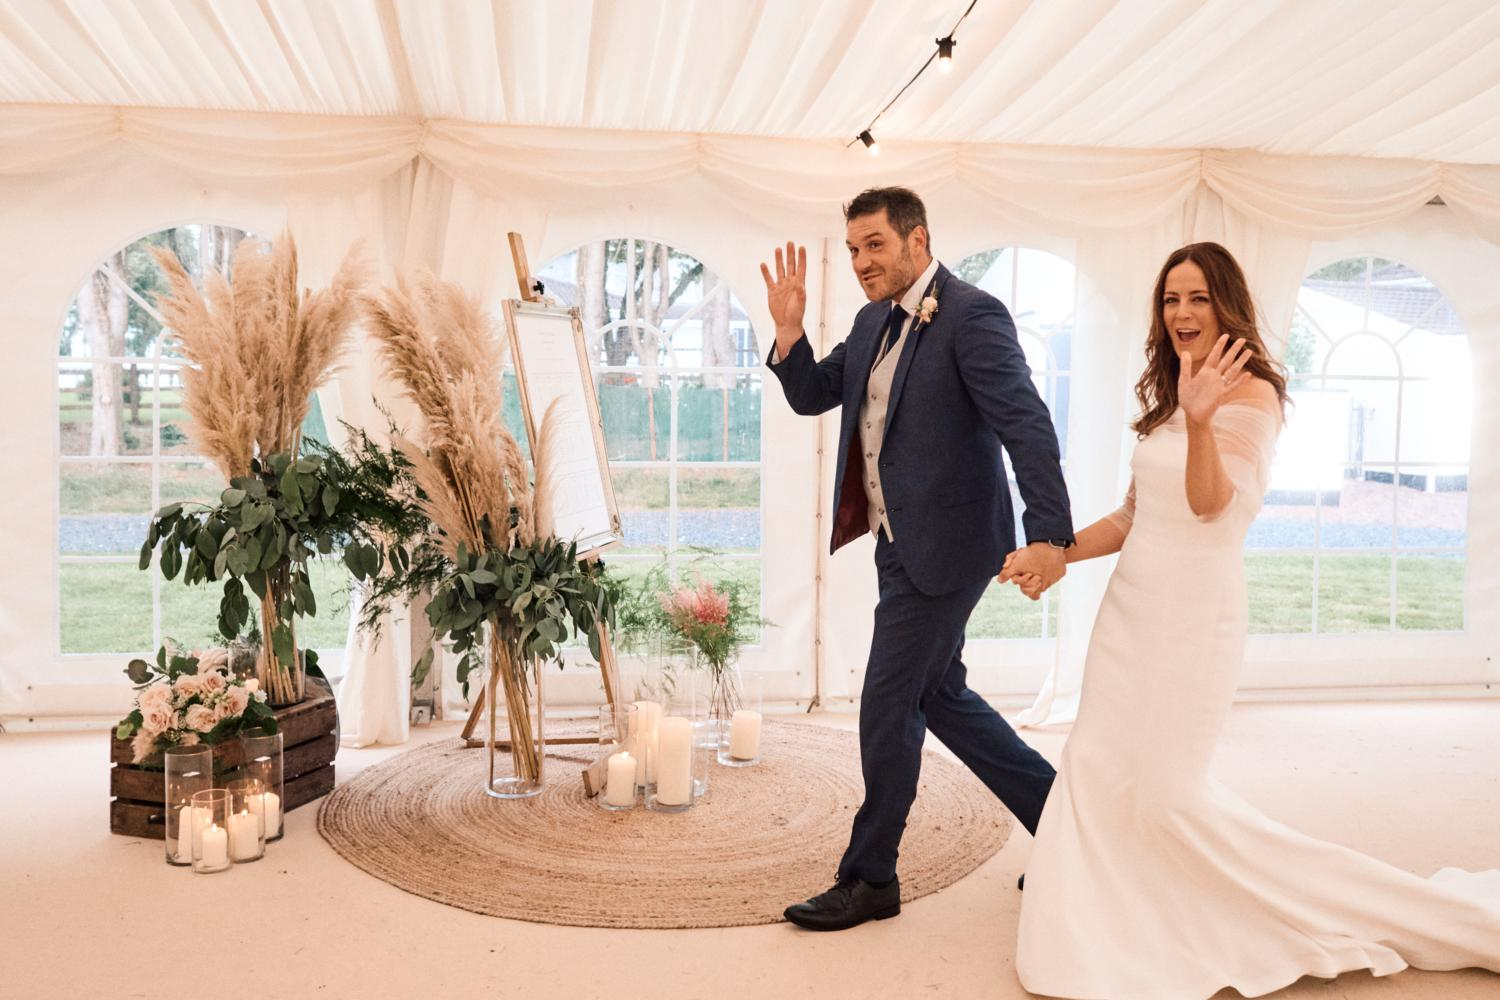 A married couple wave as they enter a marquee wedding reception